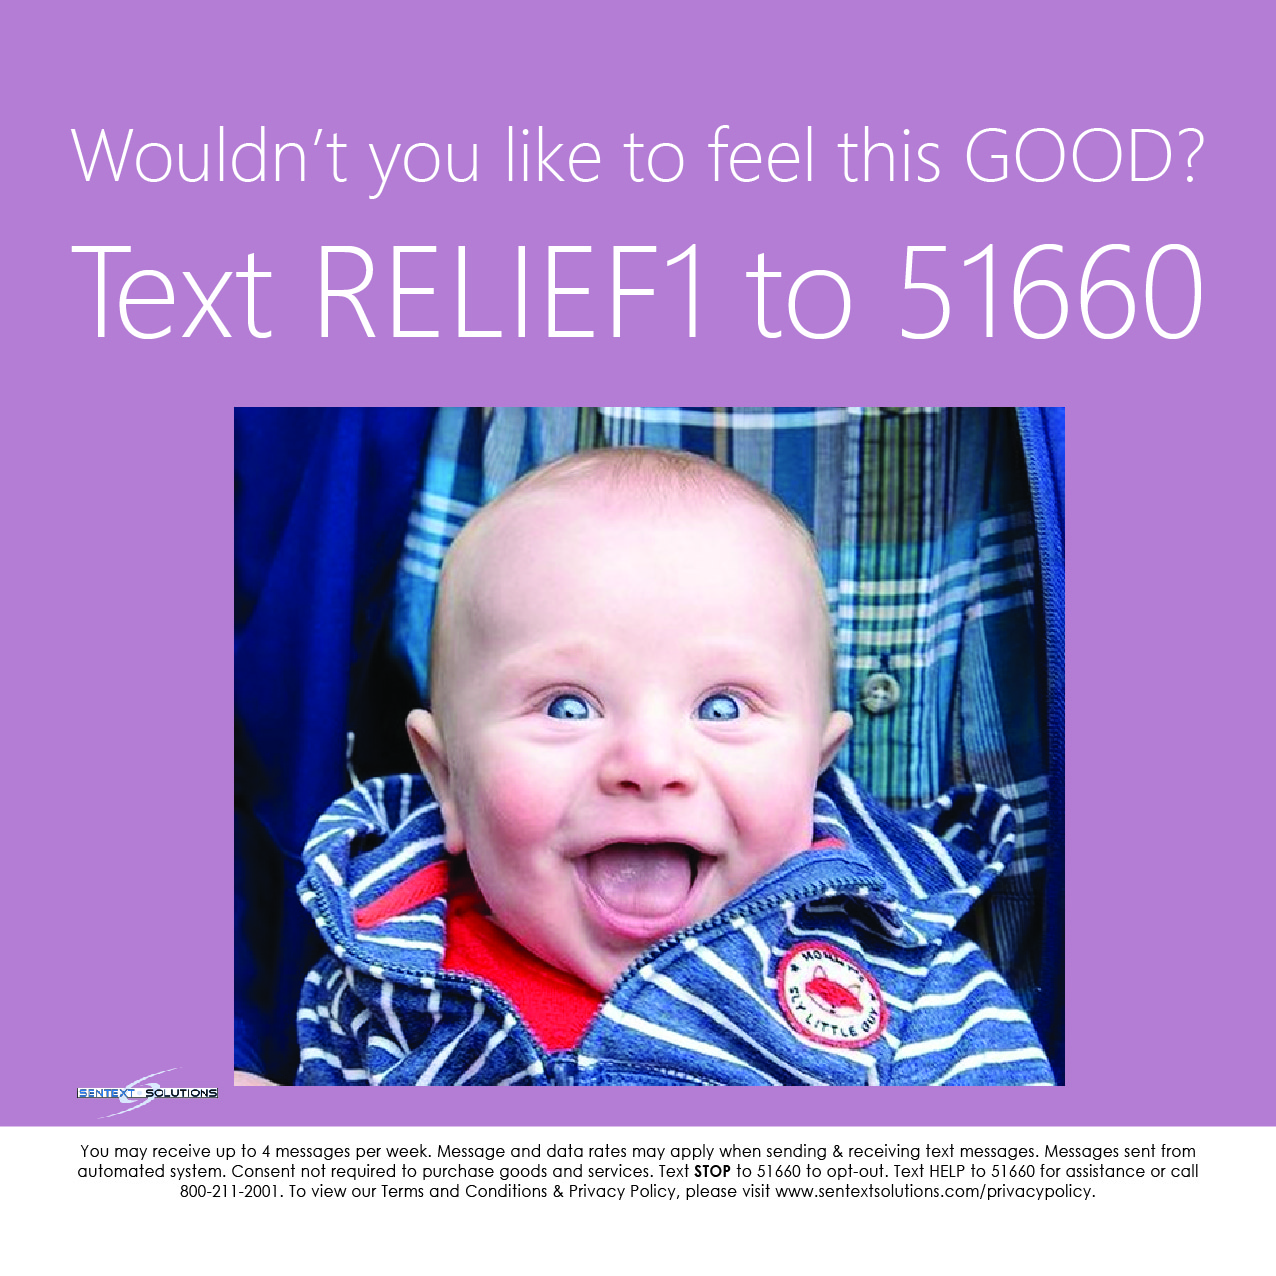 Text RELIEF1 to 51660 Baby Smiling Image